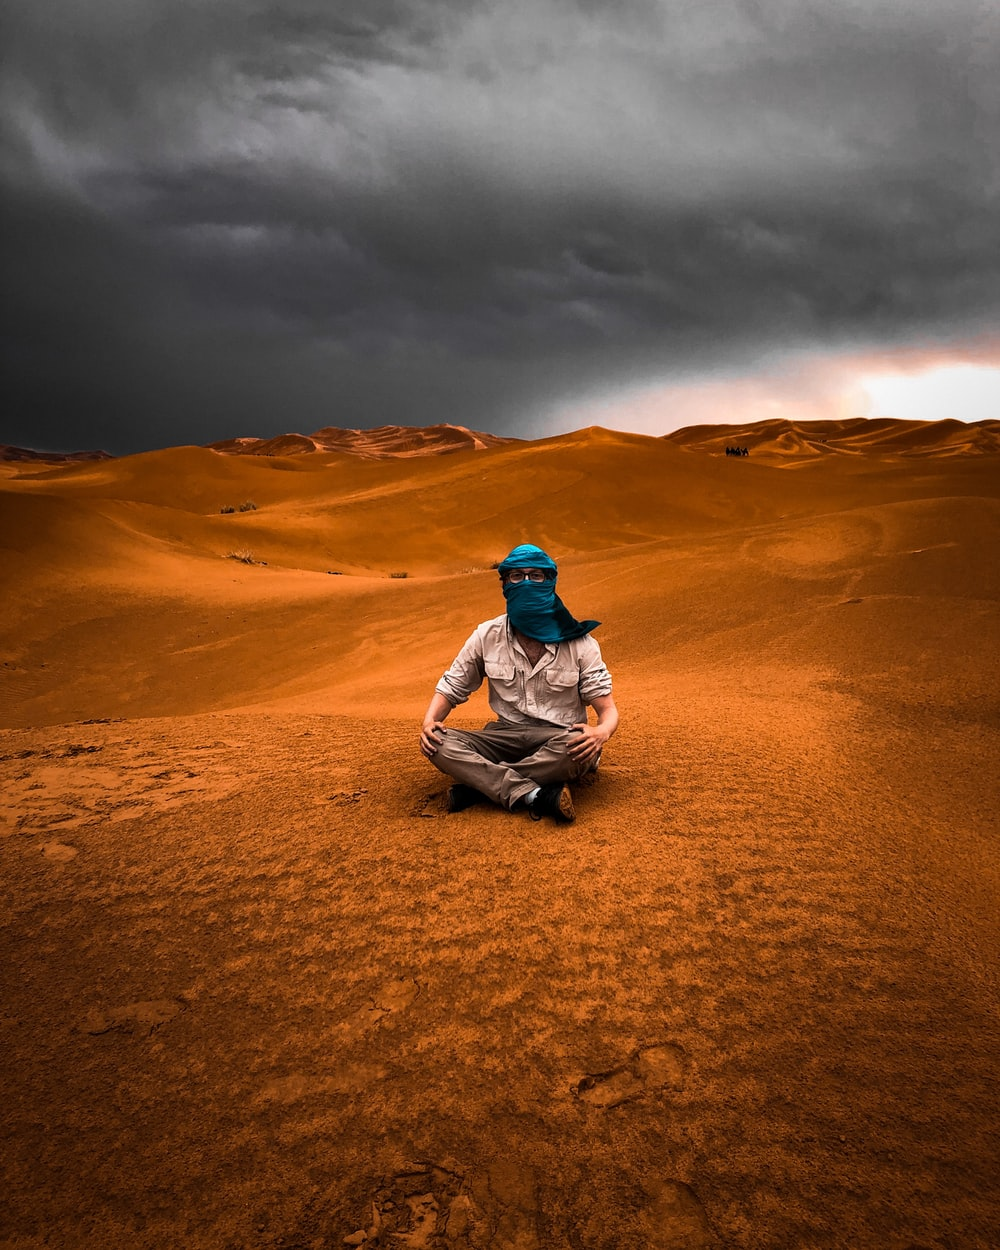 man in gray jacket sitting on brown sand under gray cloudy sky during daytime